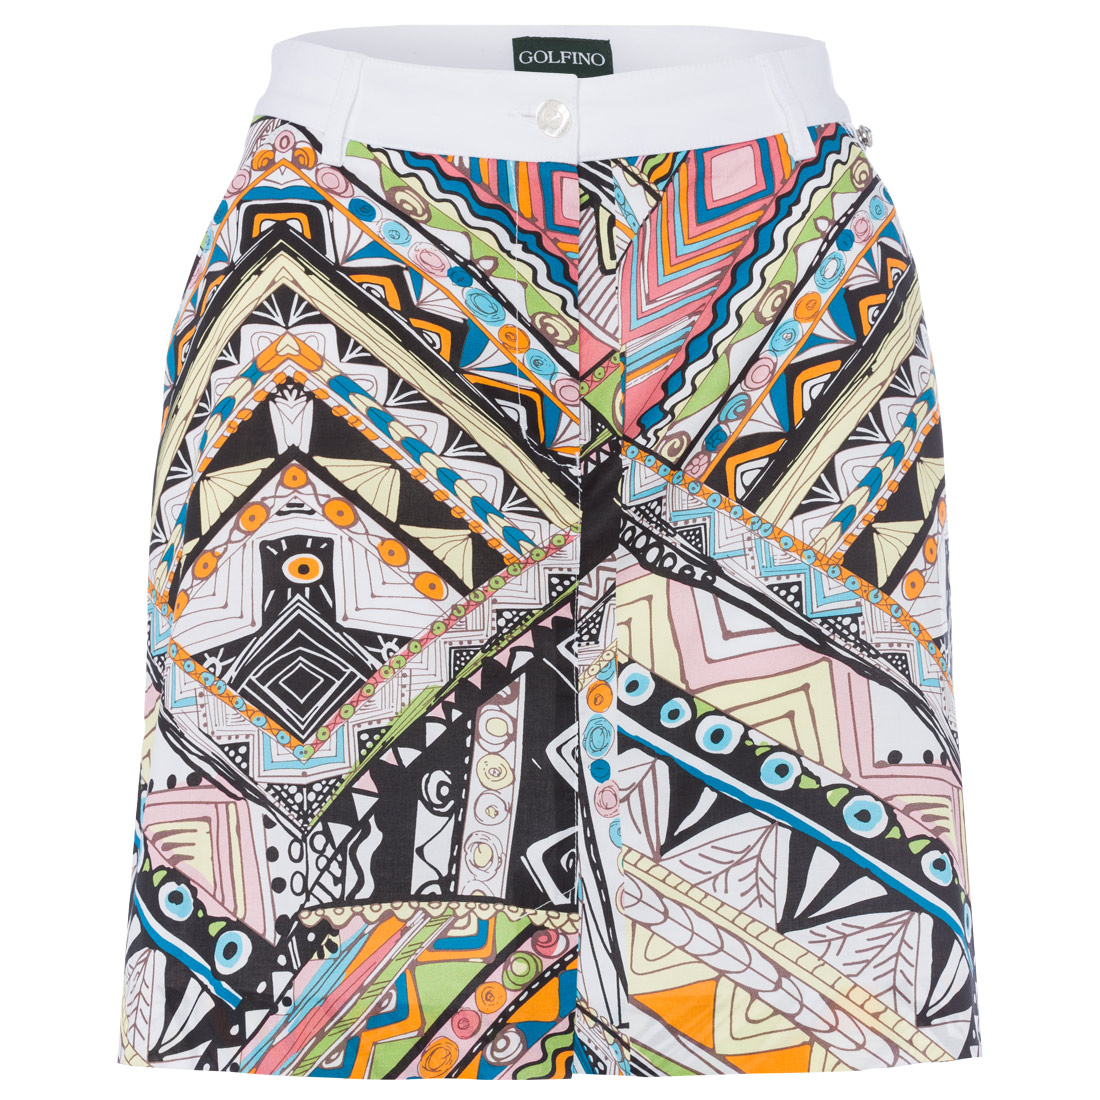 Ladies' skort with all-over pattern